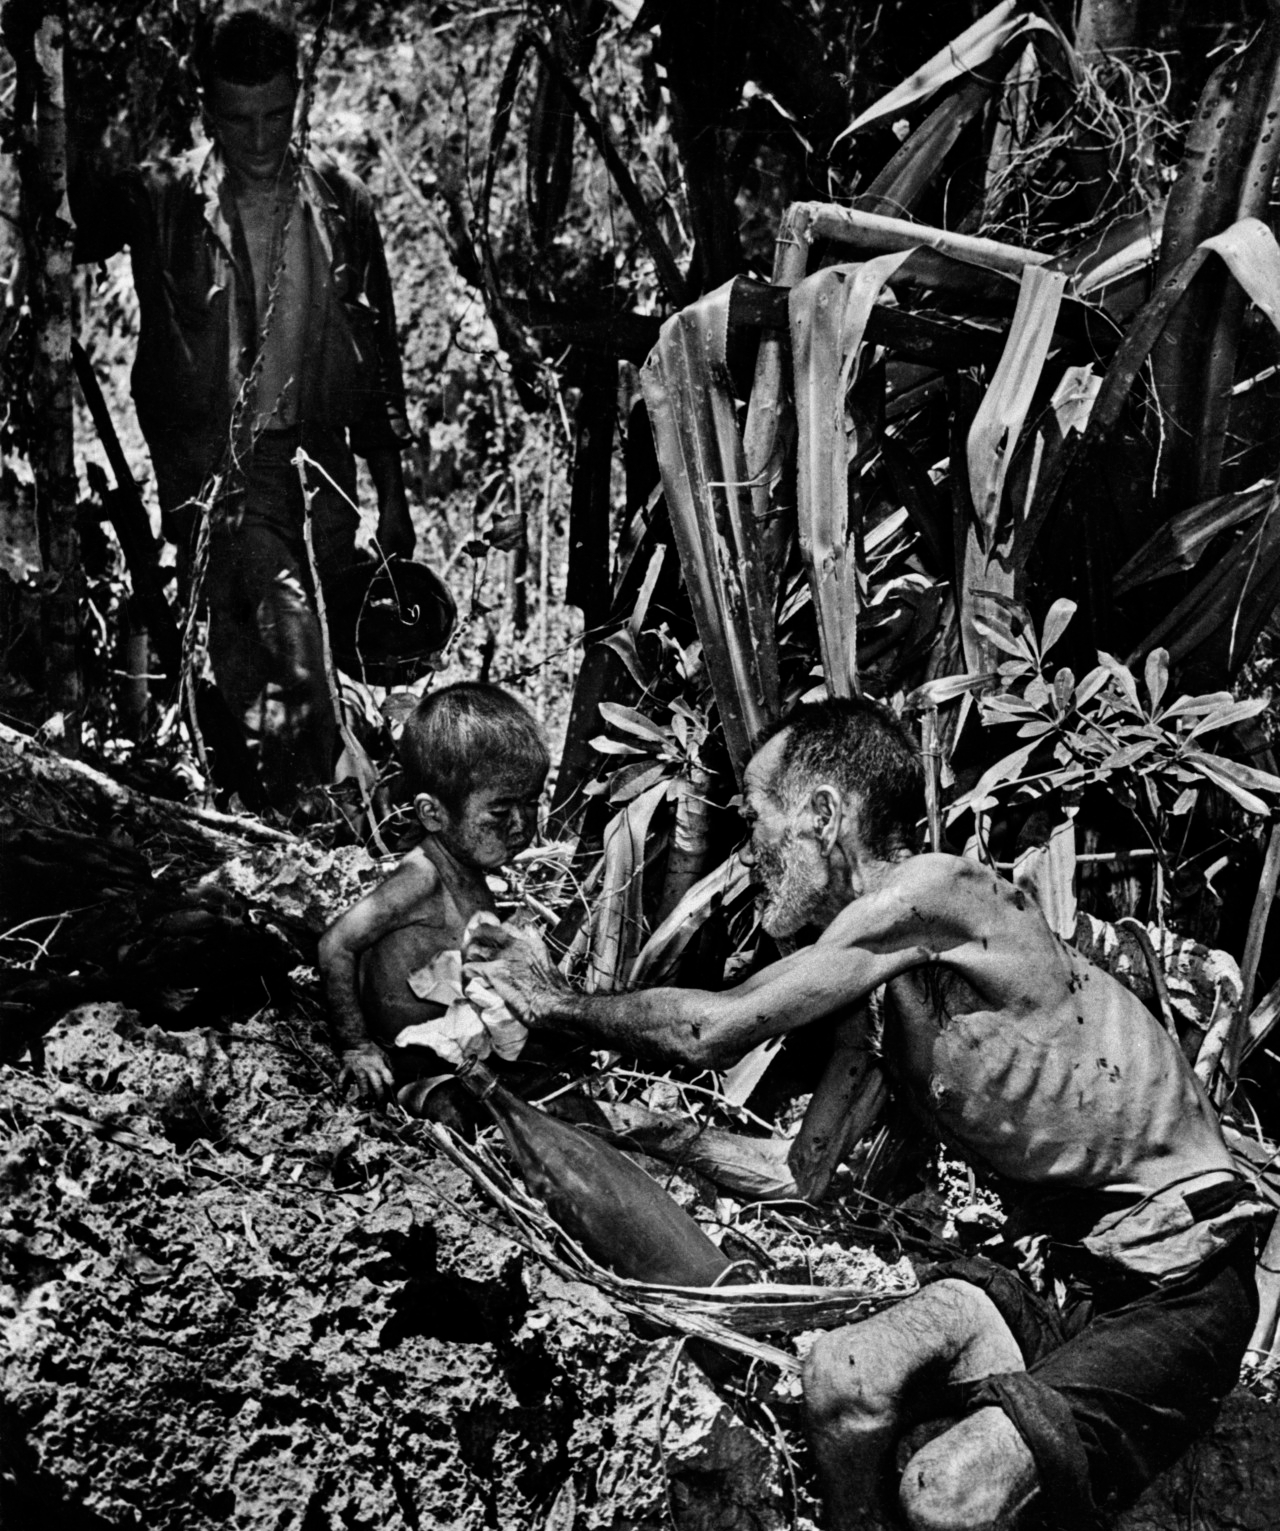 Japanese civilians captured by the US forces